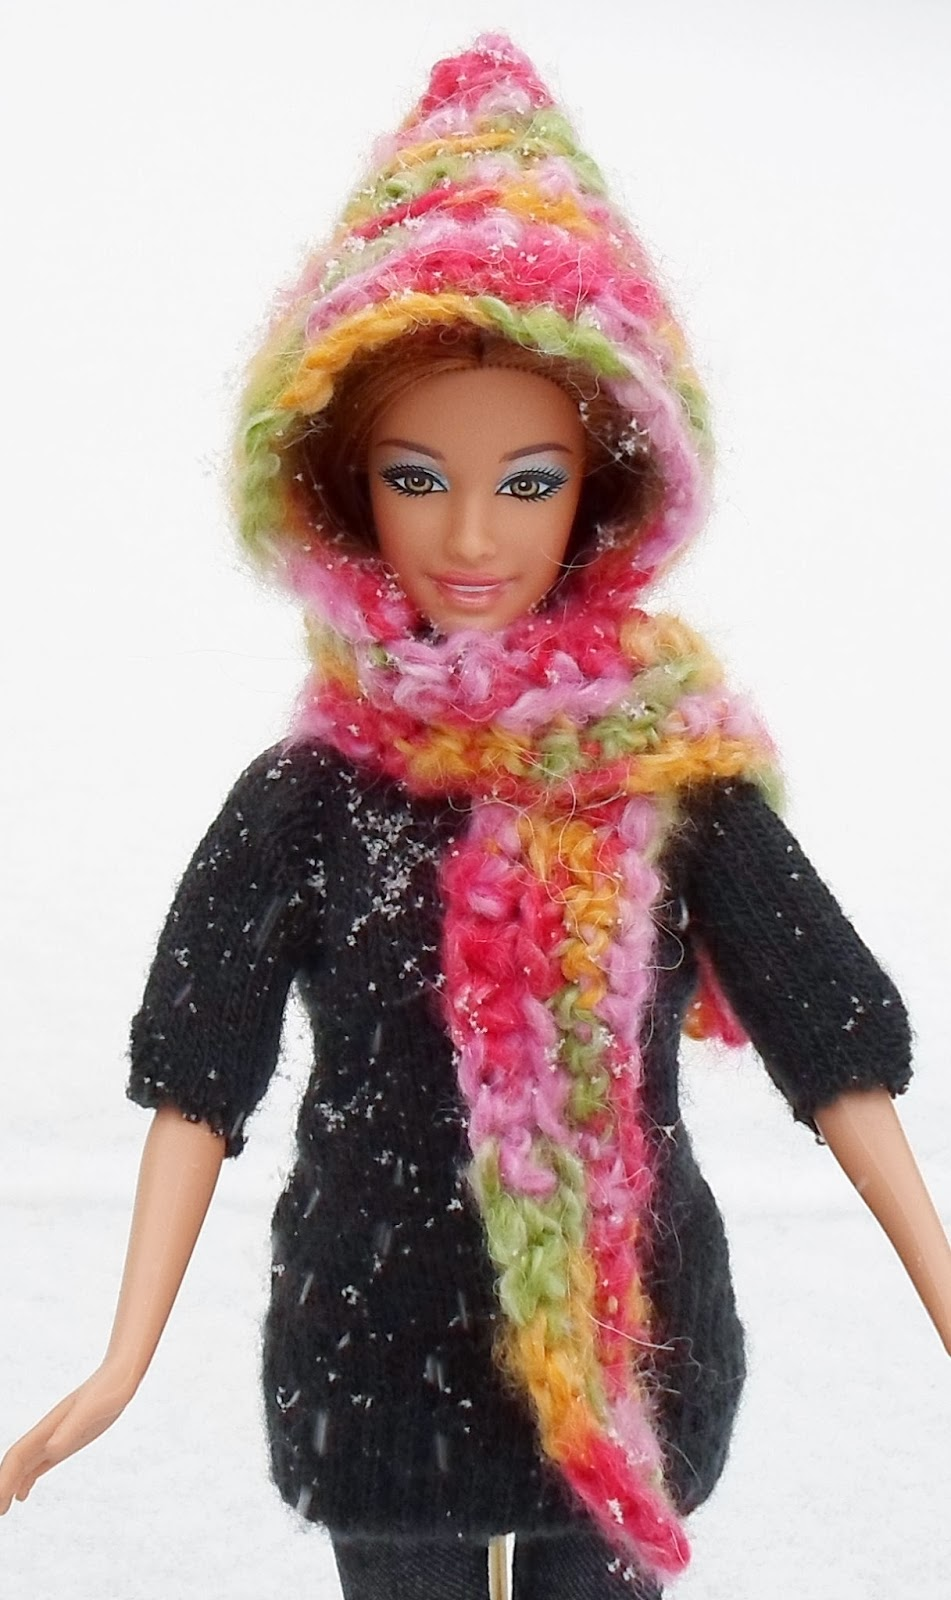 http://happierthanapiginmud.blogspot.com/2014/01/easy-hooded-scarf-for-barbie-crochet.html